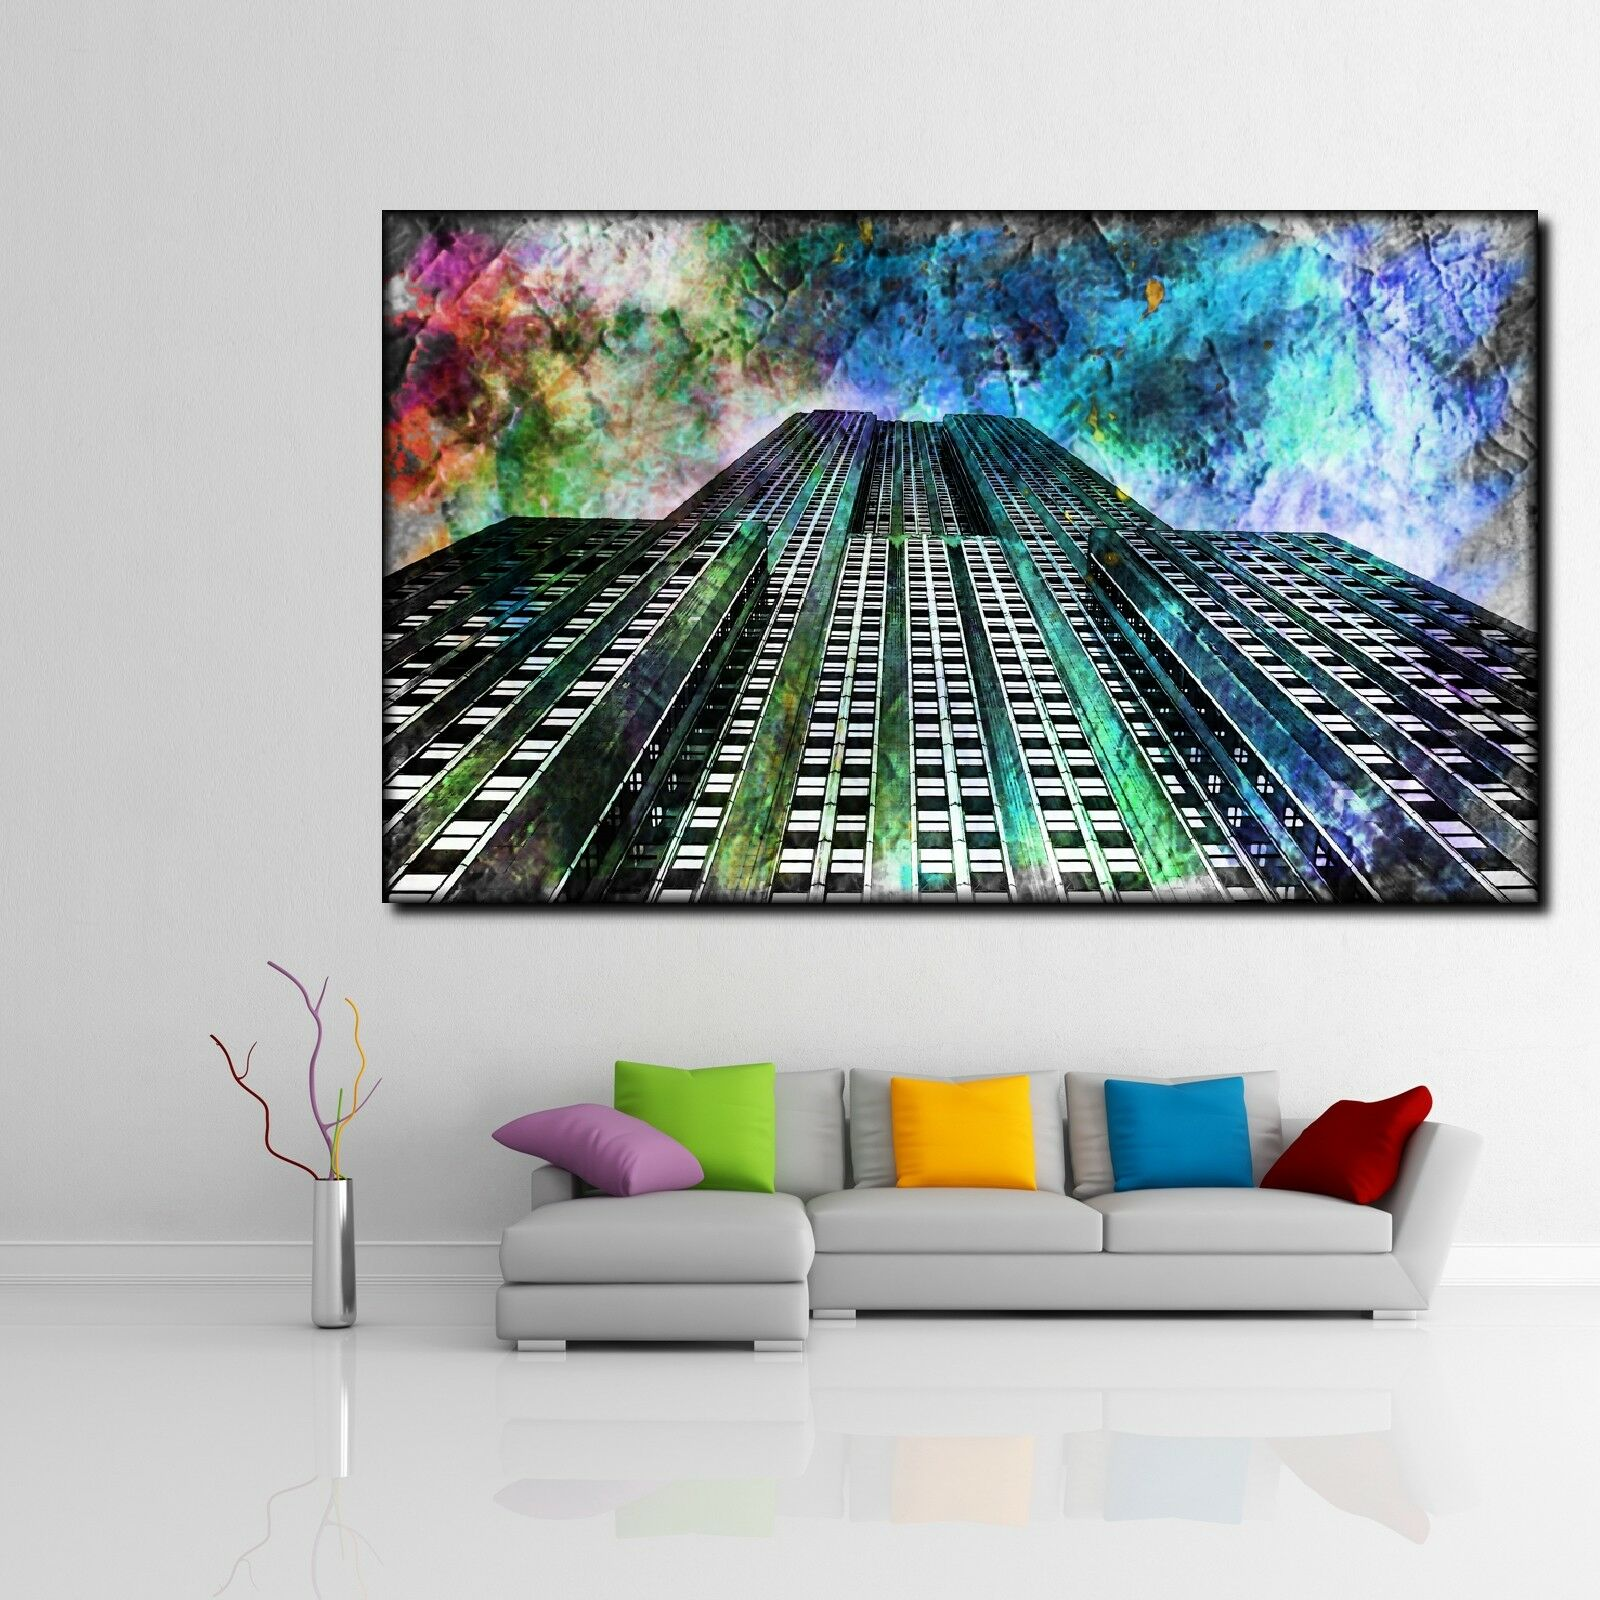 LEINWAND BILD ER XXL POP ART EMPIRE STATE BUILDING BUNT ABSTRAKT POSTER 150x90